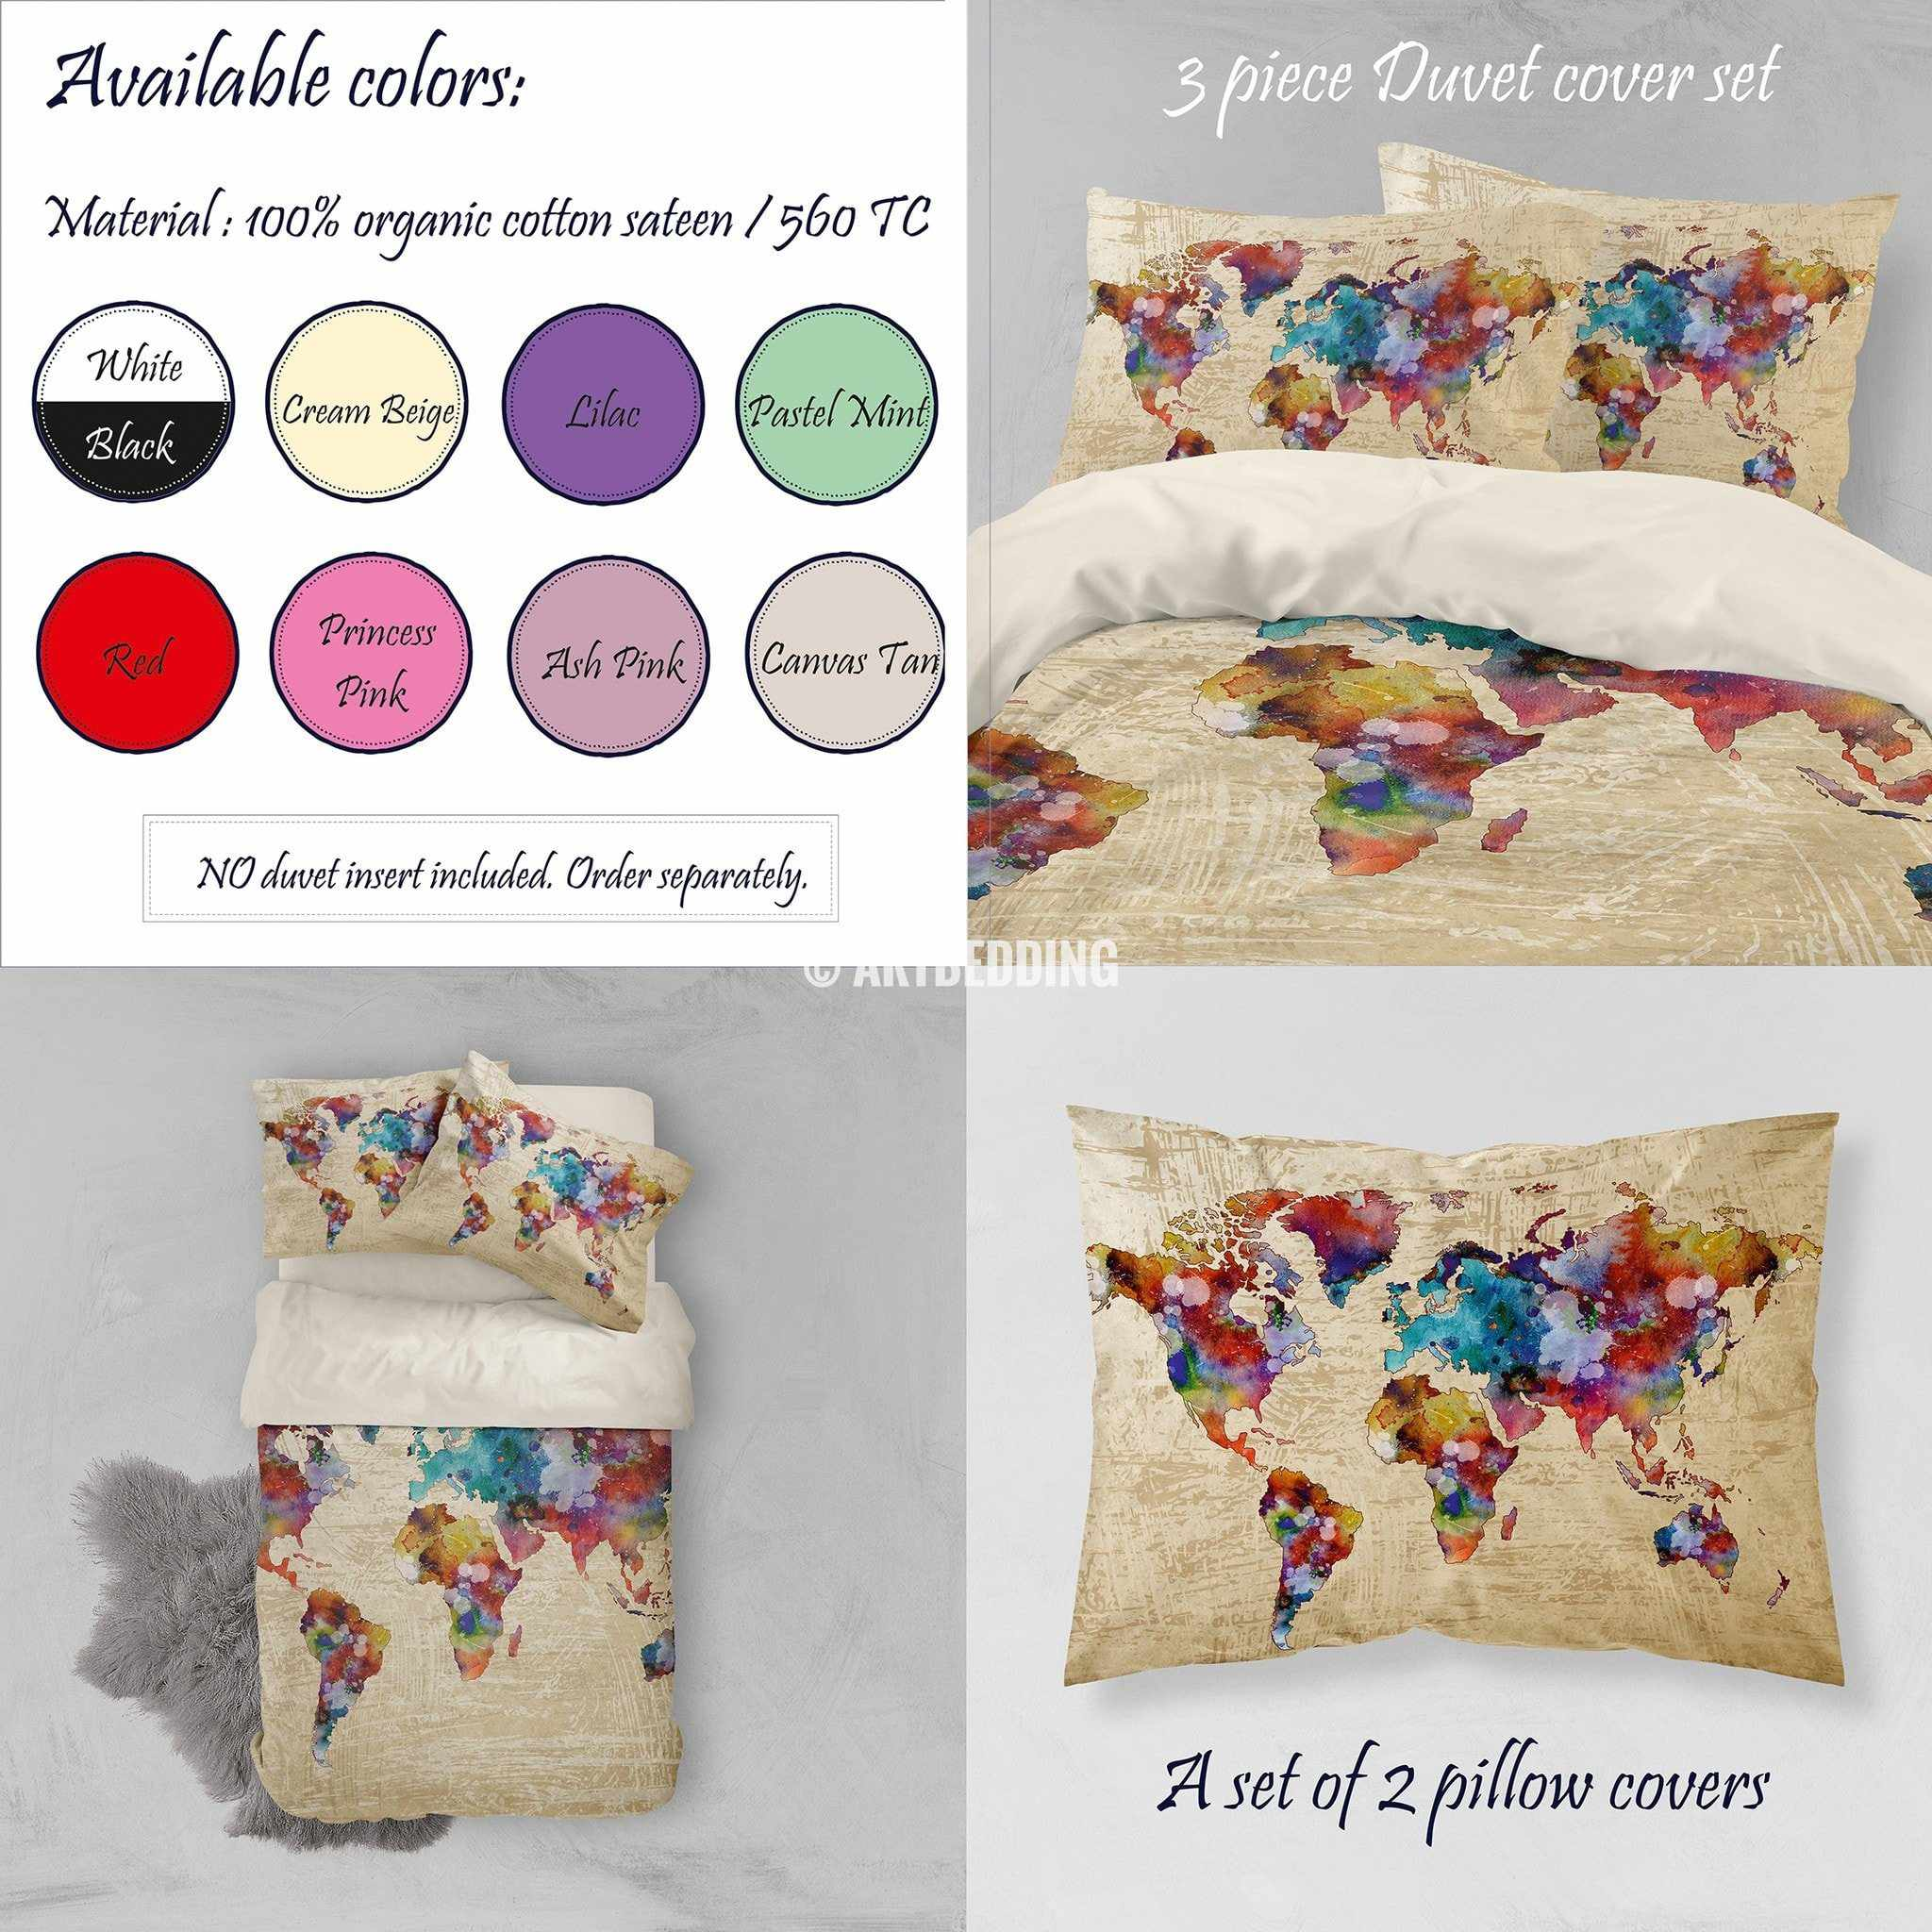 Watercolor world map bedding boho chic watercolor duvet cover set watercolor world map bedding watercolor art print duvet cover set grunge splashes duvet cover gumiabroncs Gallery